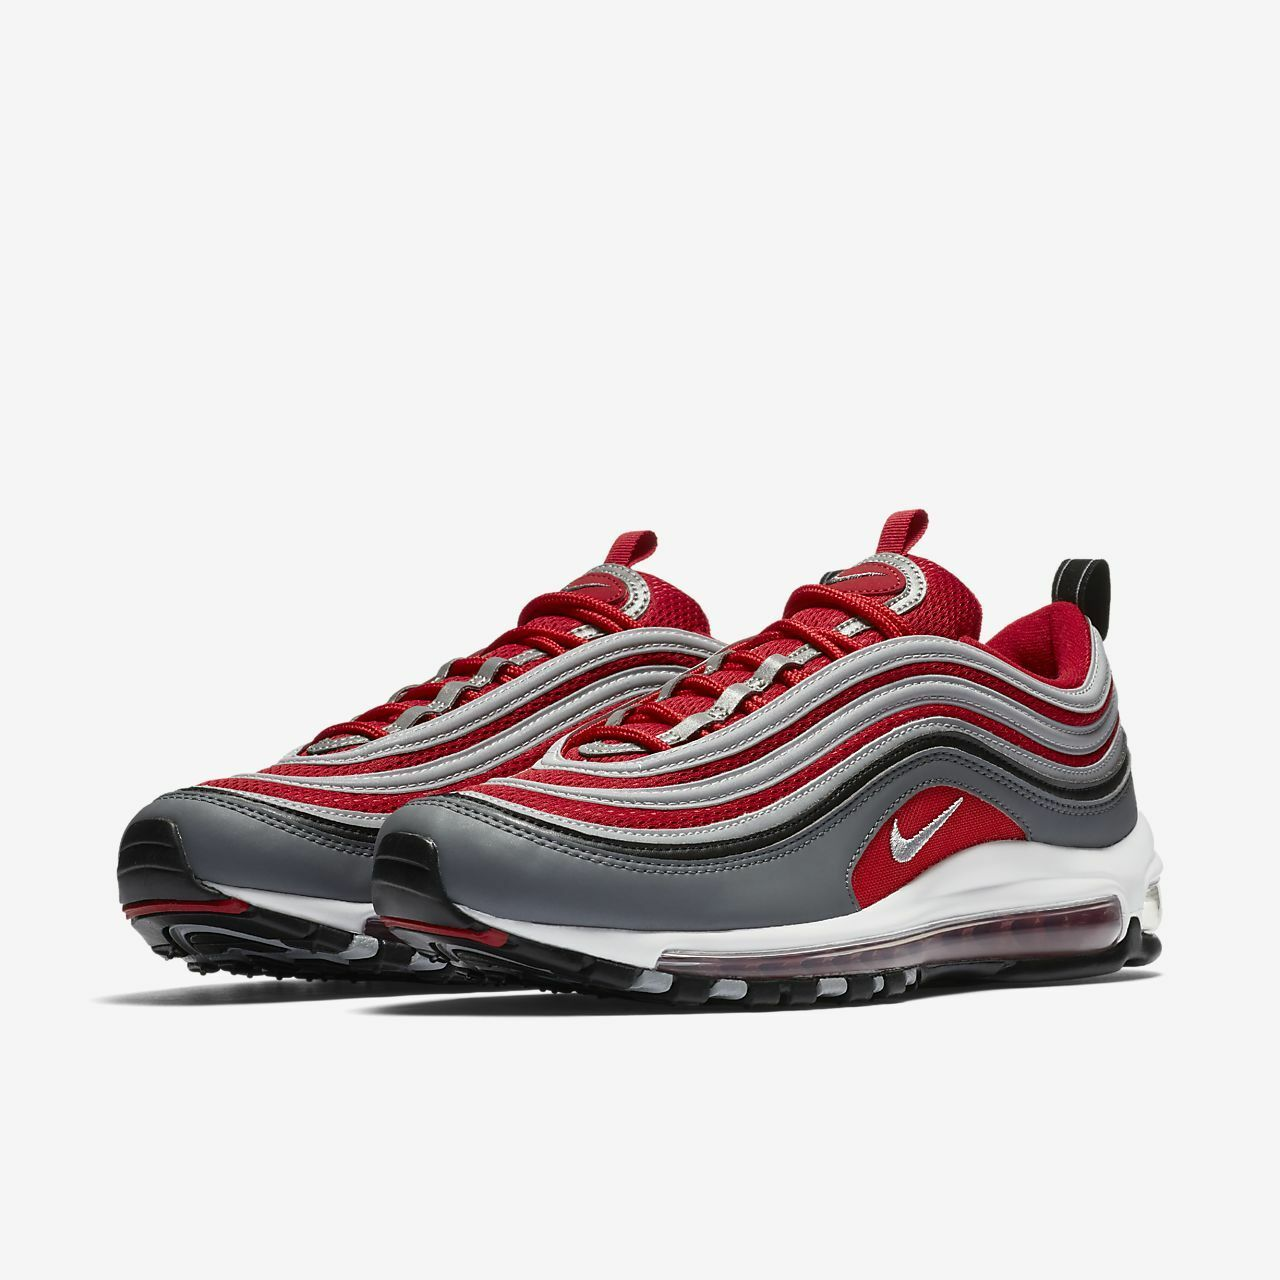 NIKE AIR MAX 97 TRAINERS WOLF GREY GYM RED 921826 007 ALL SIZES BNWB